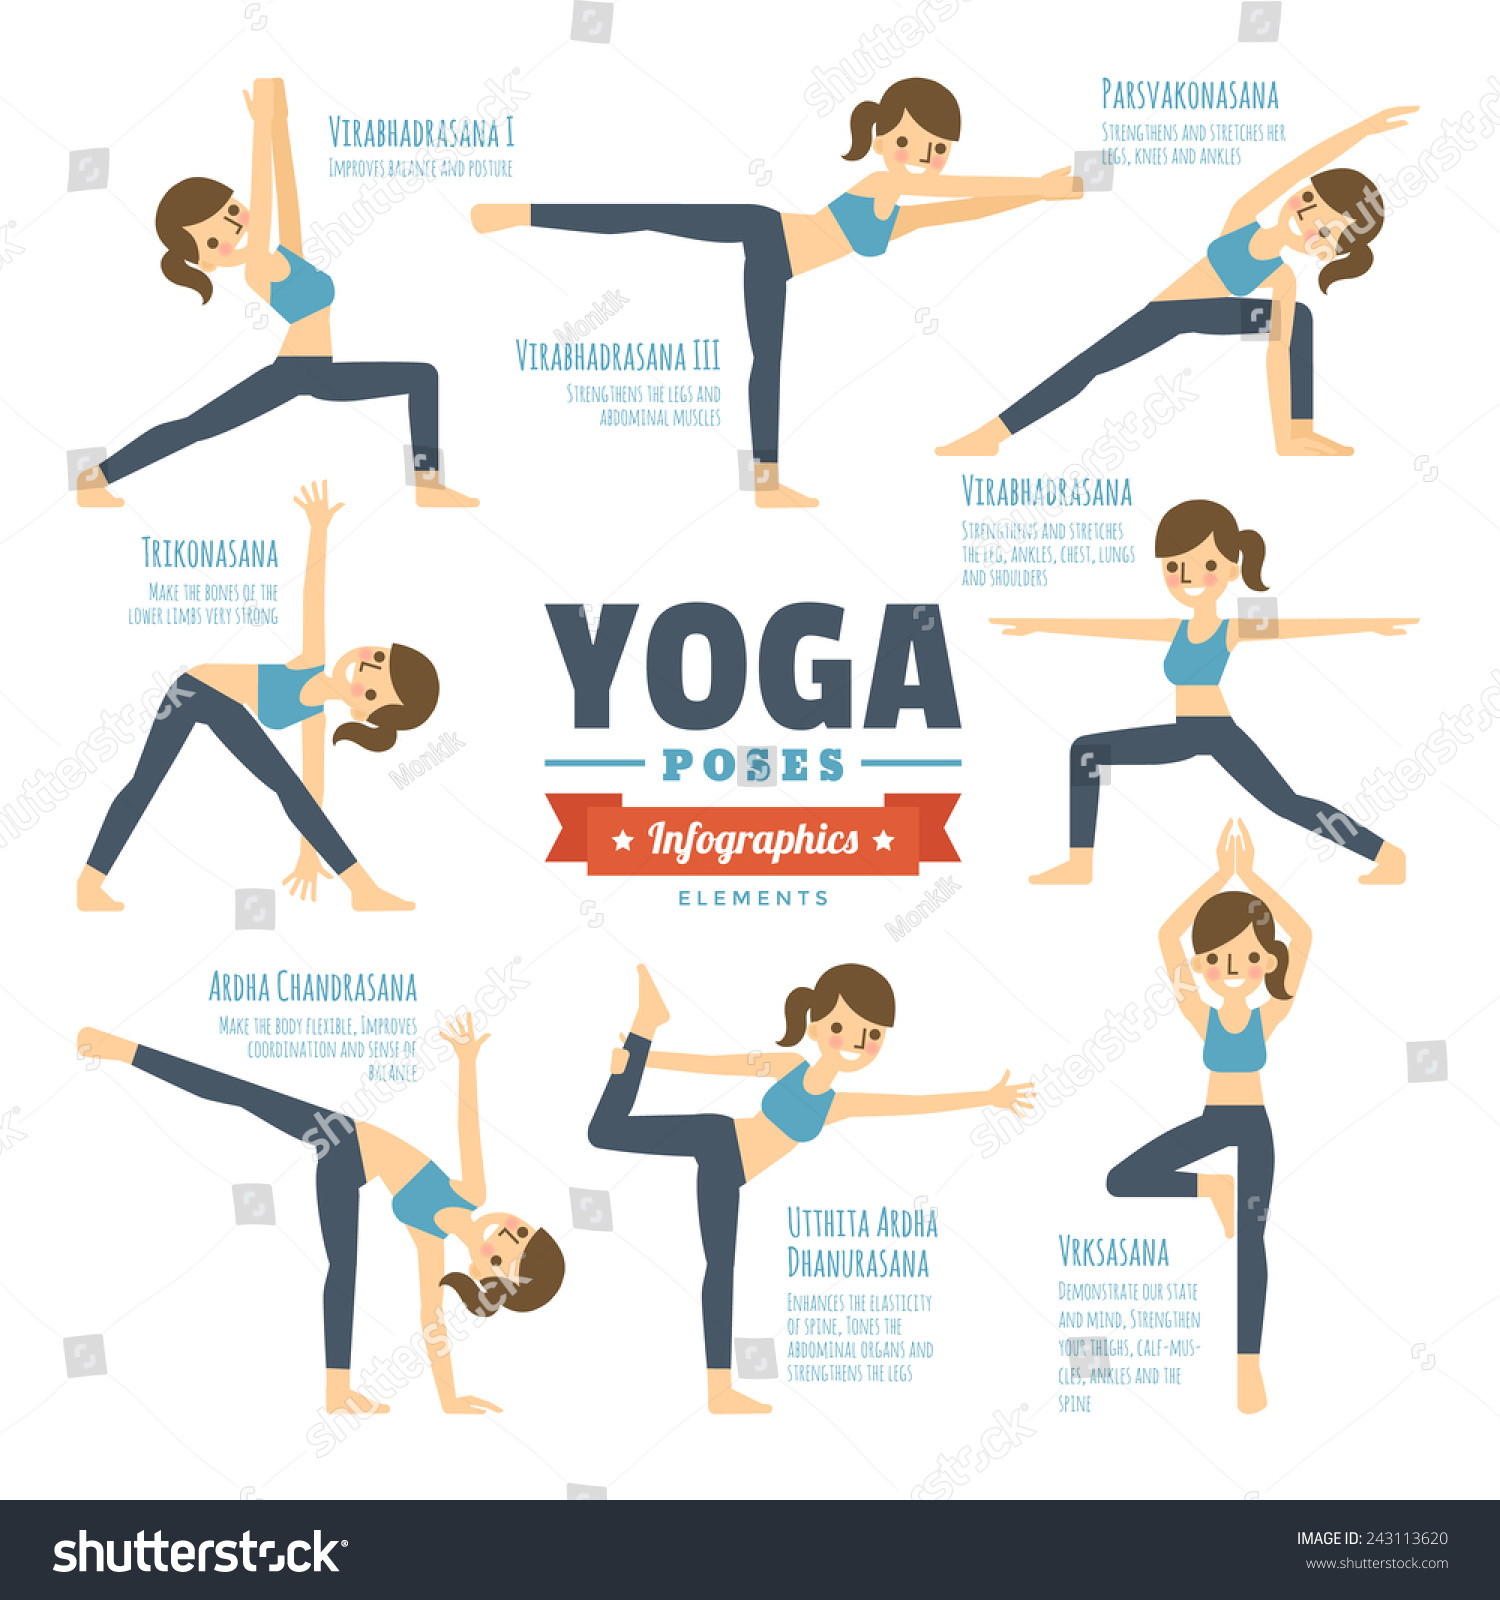 stock-vector-yoga-poses-infographic-elem